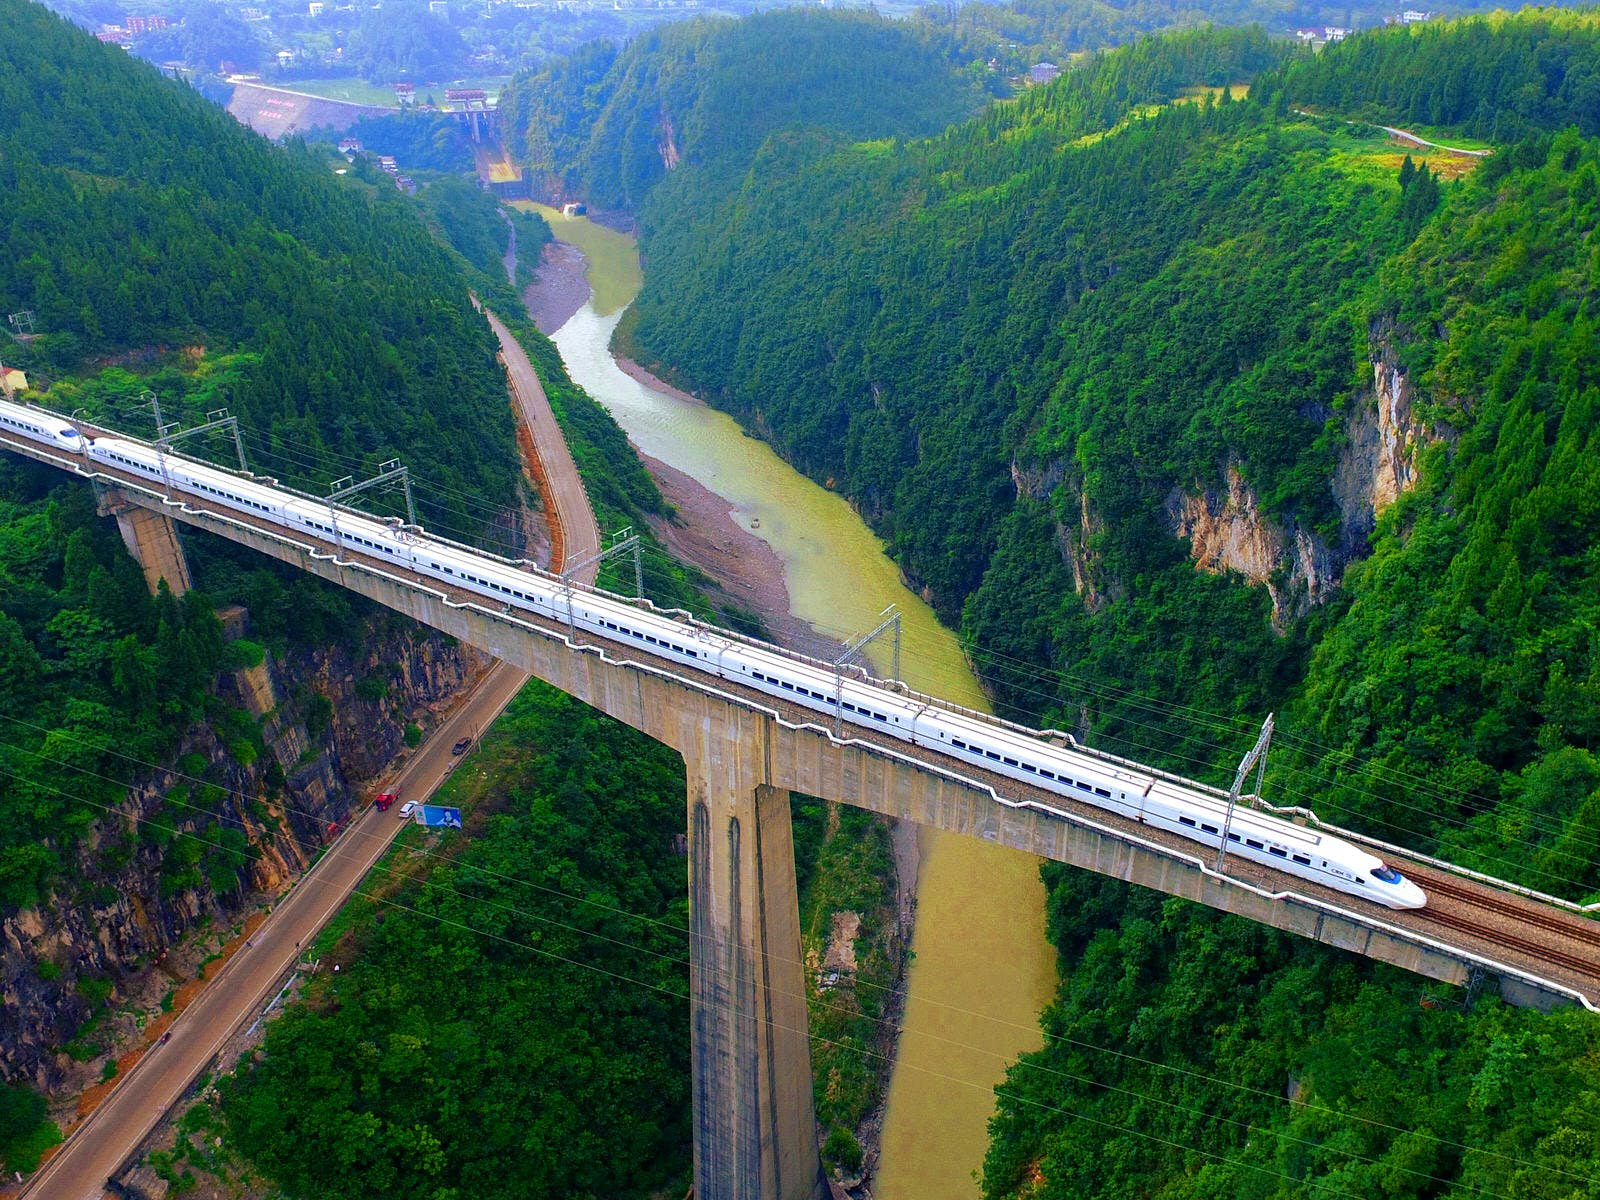 China now boasts the world's largest high-speed rail network, with more than 22,000km of track © Xinhua News Agency / Getty